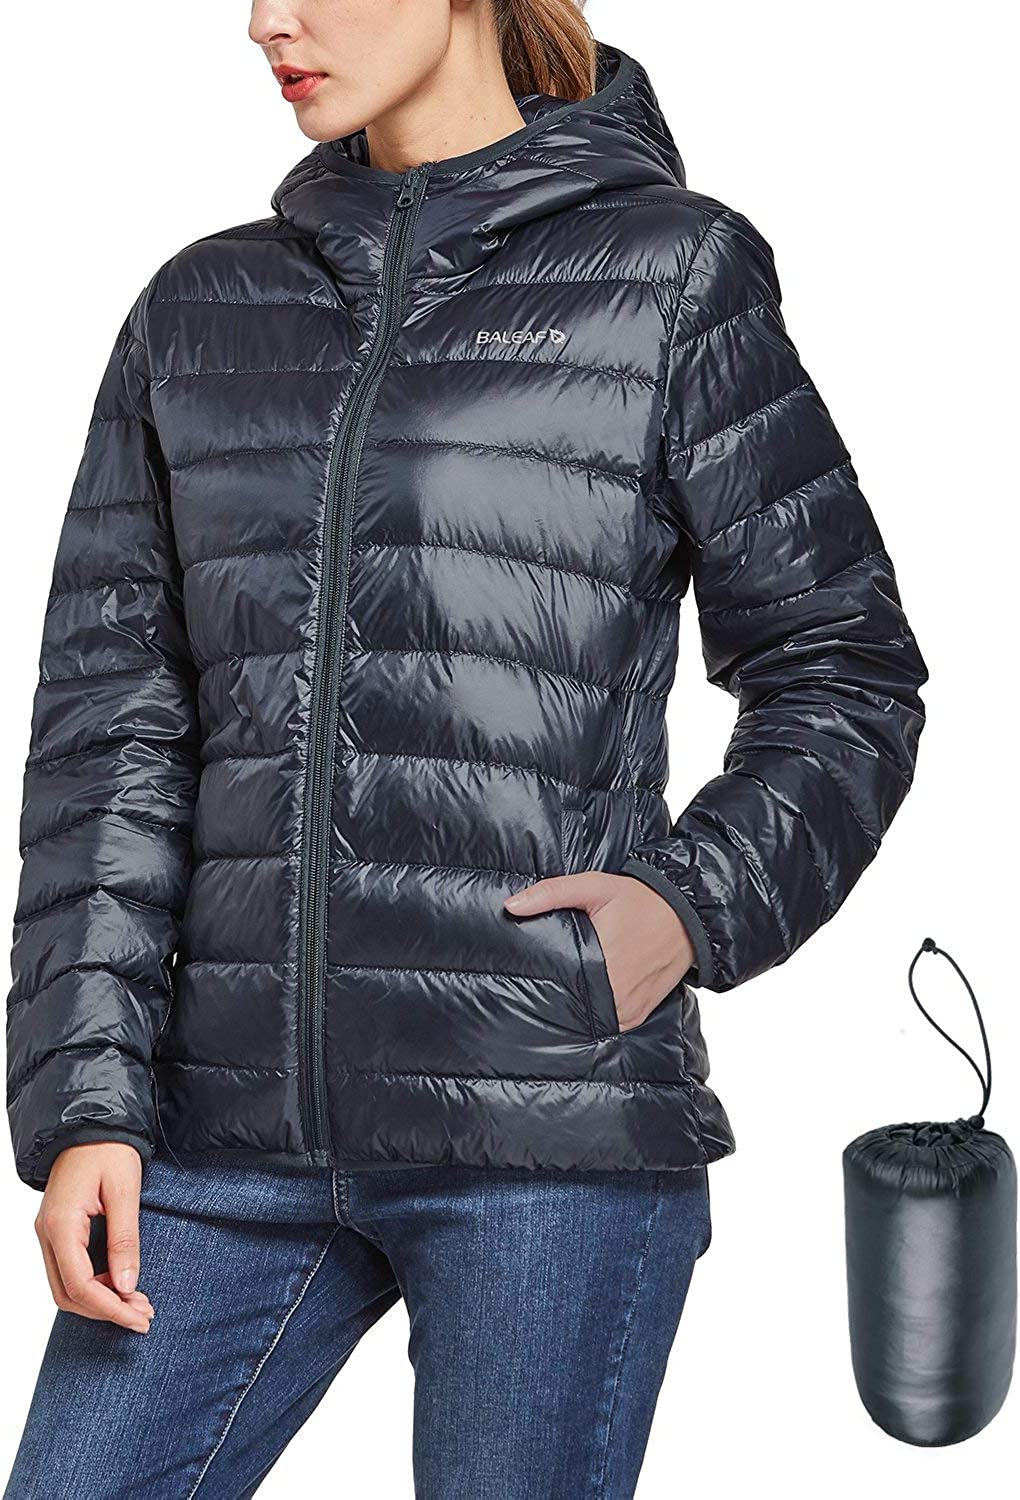 BALEAF Women's Packable Down Jacket Hooded Thermal Ultral Lightweight Puffer Jacket Hoodies Winter Insulated Coat